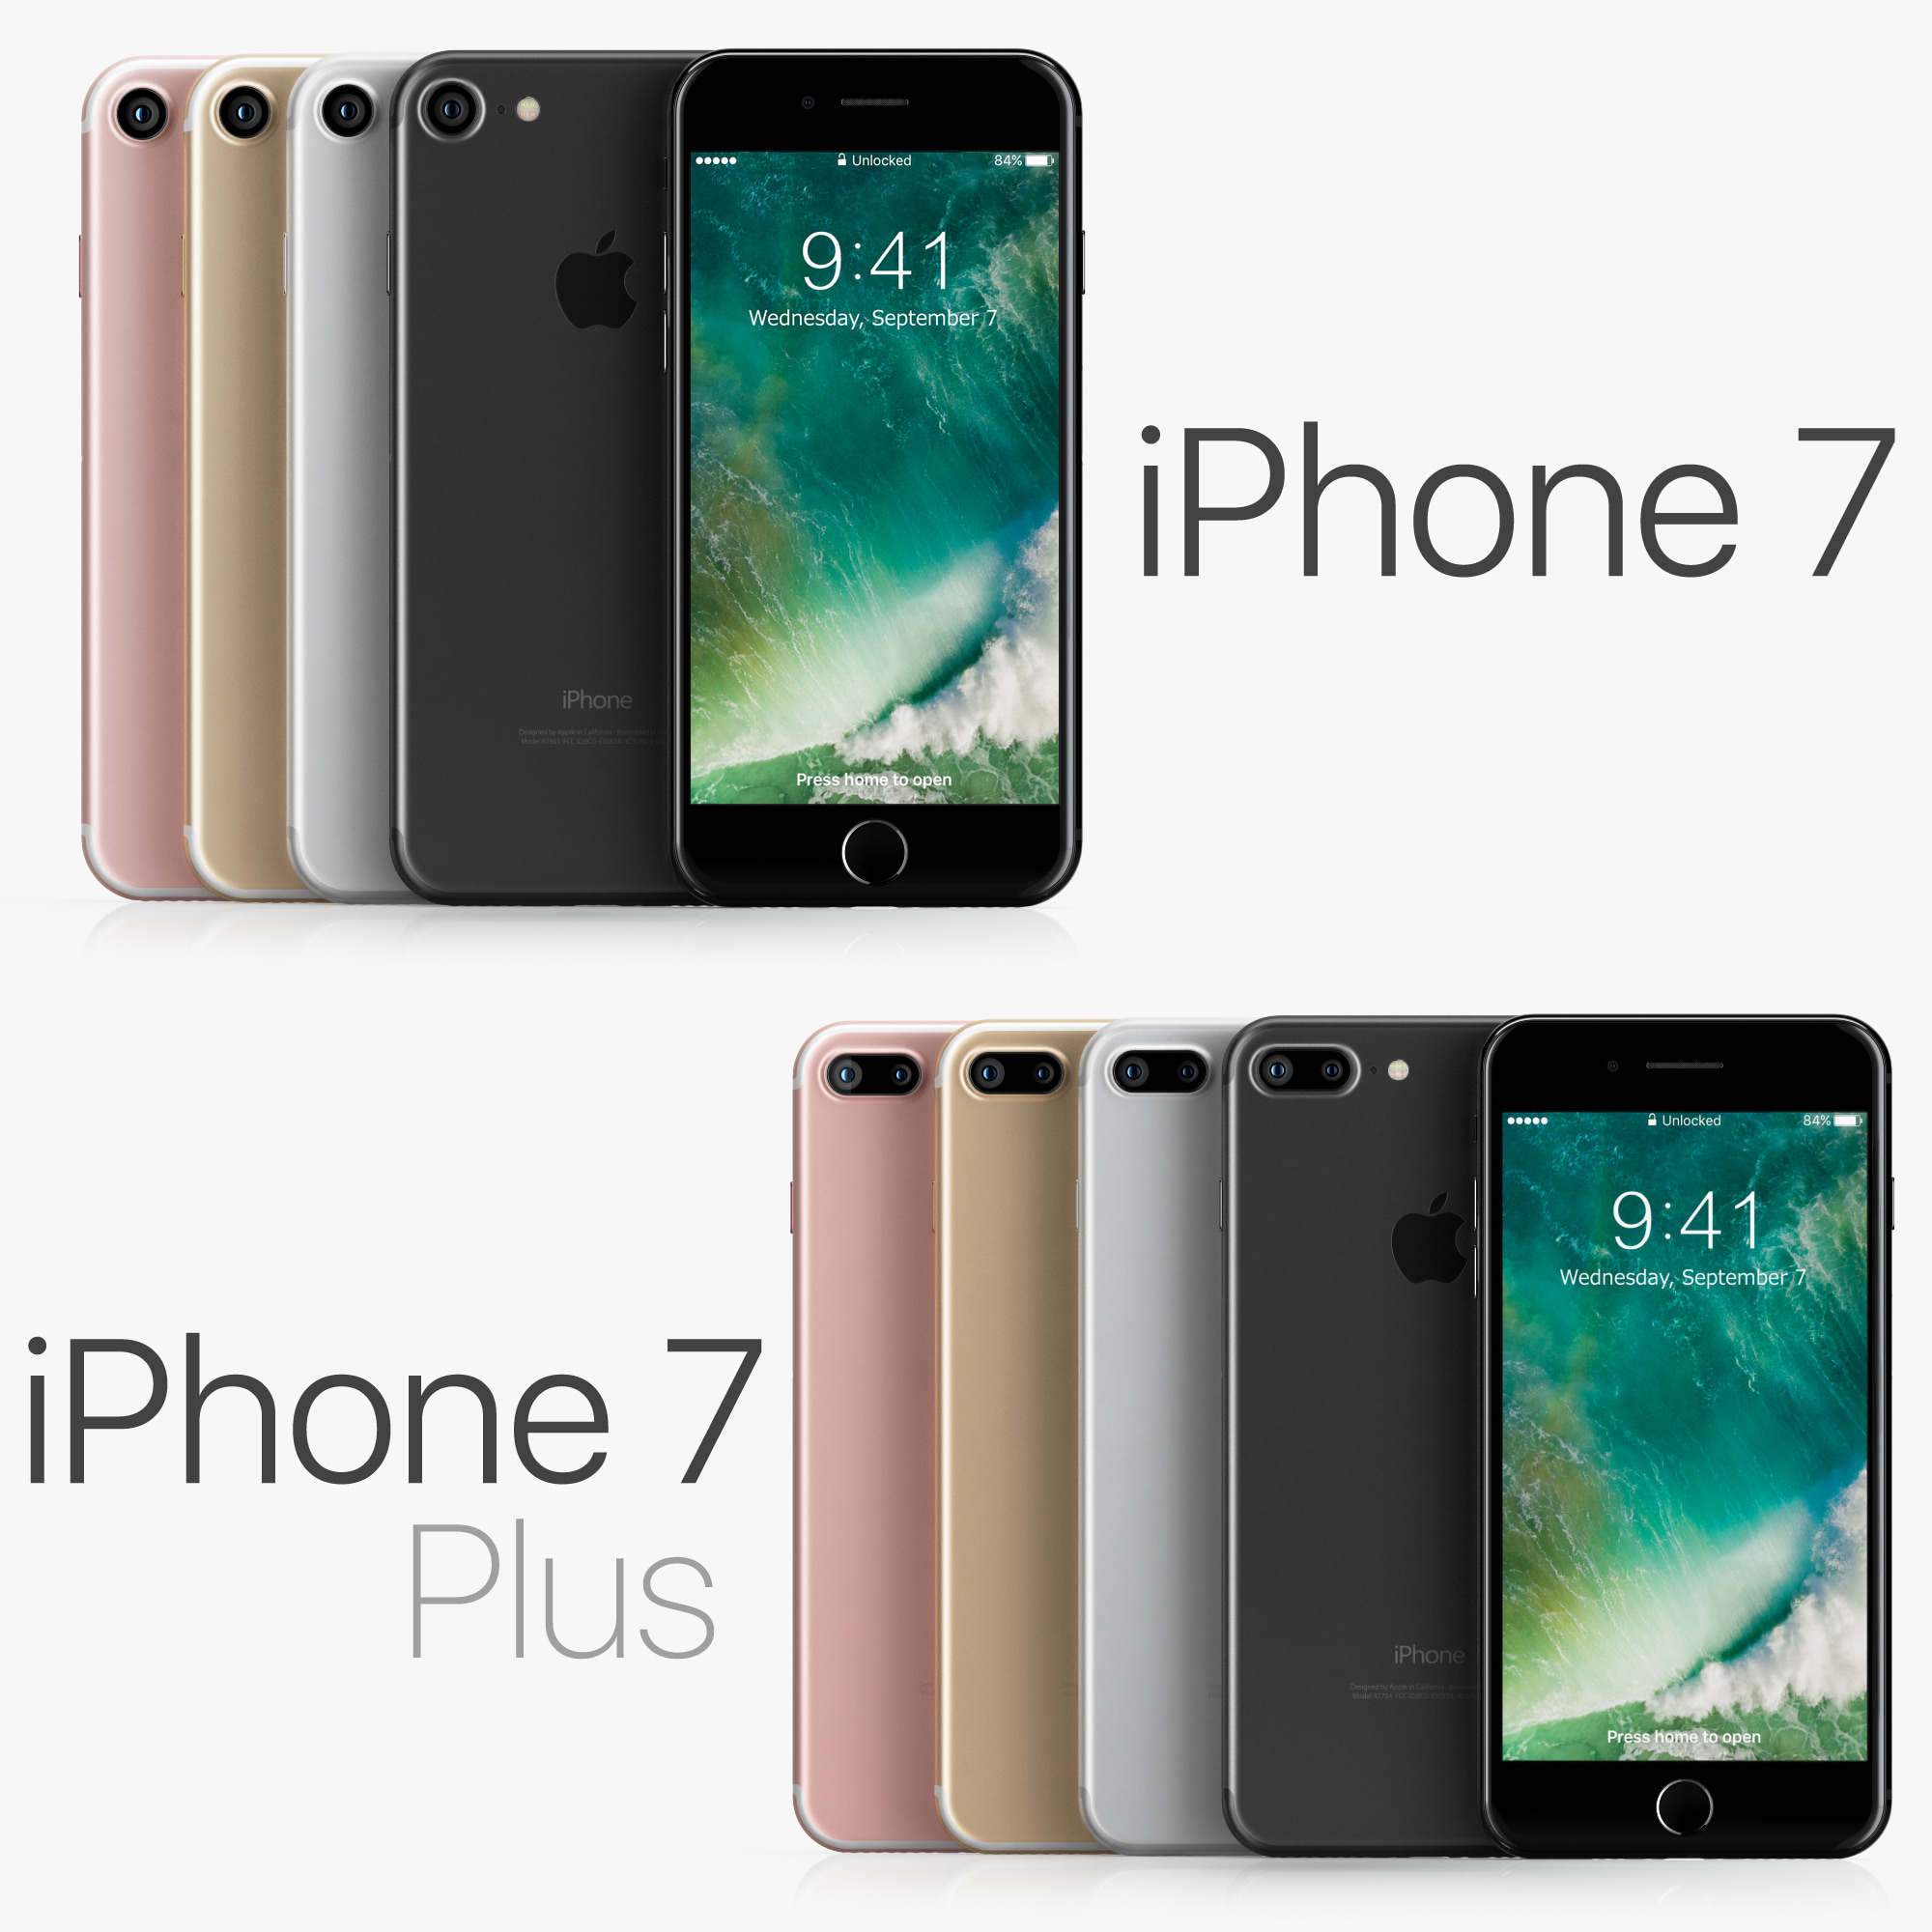 iPhone_7Plus_and_iPhone_7_All_Colors_01.jpg